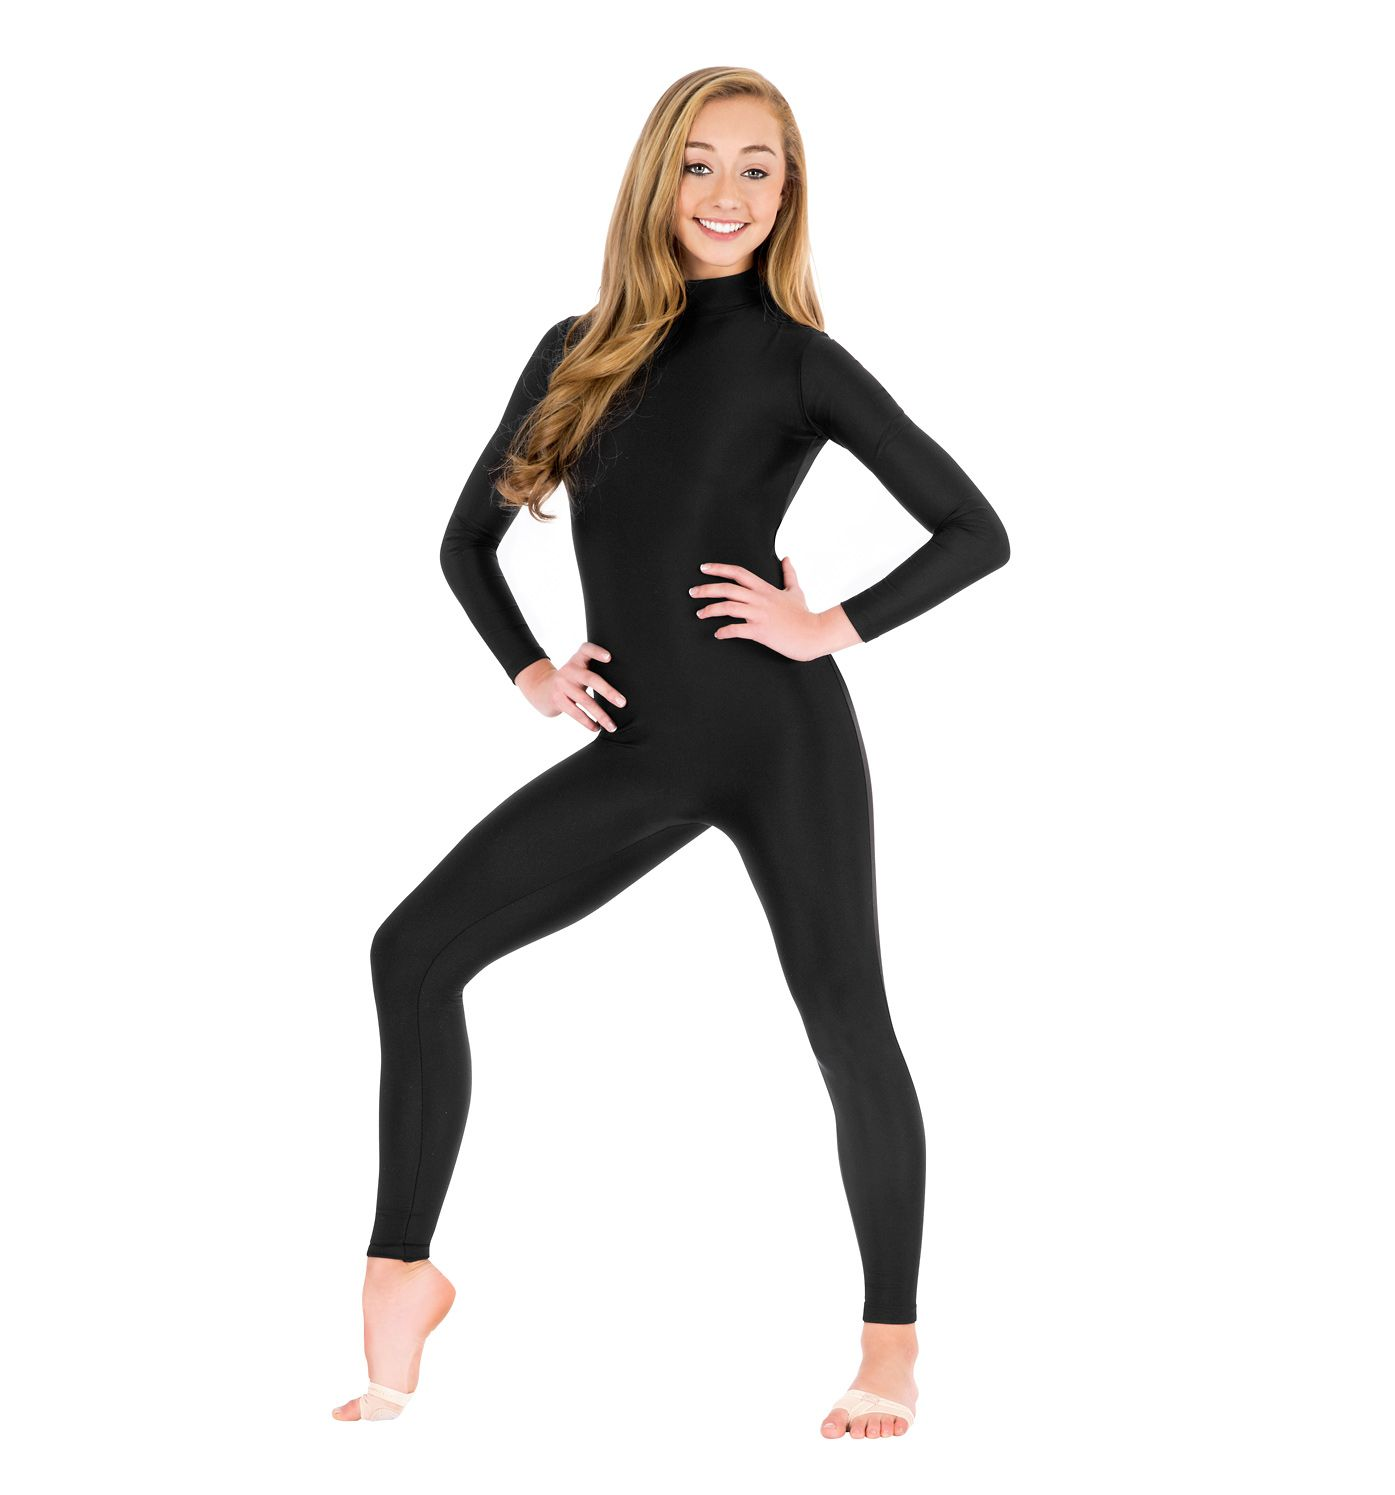 Girls Full Body Unitard Long Sleeve Gymnastics Leotard Jumpsuit Ballet Dancewear